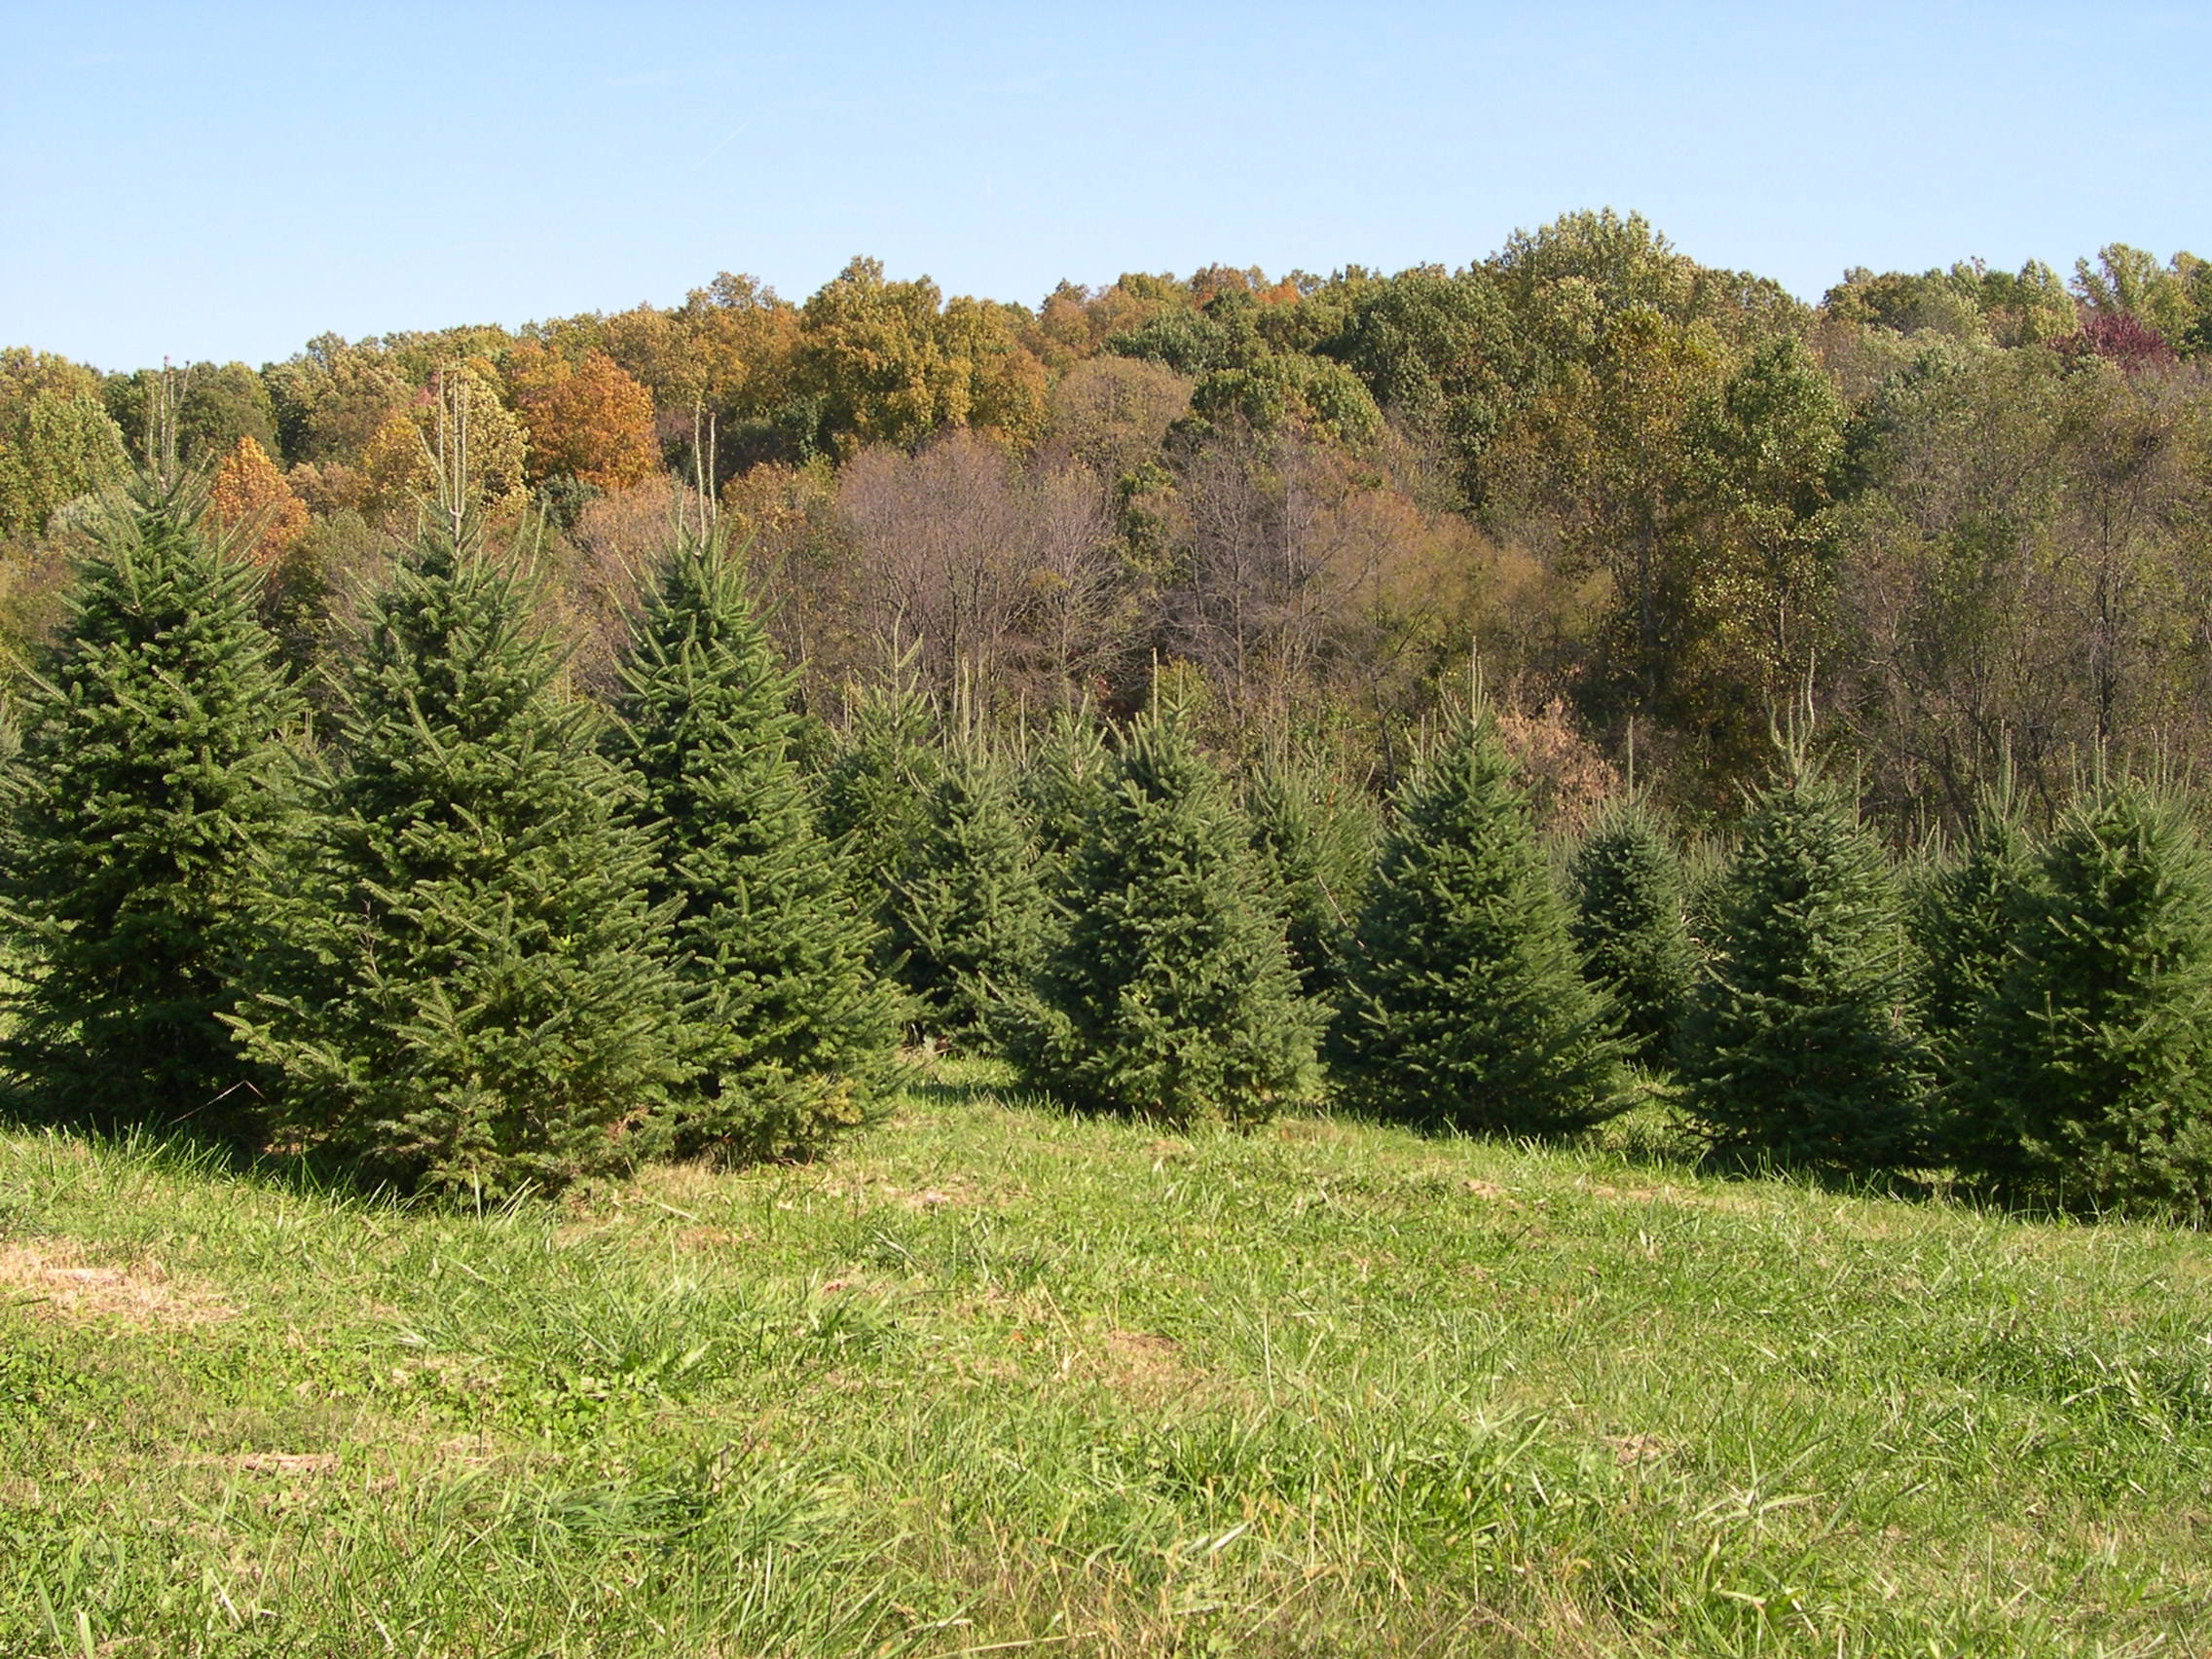 Christmas Trees. Pets Are Not Allowed On The Farm Premises Per Our  Insurance Carrier. We Follow The Federal Good Agricultural Practices (GAP)  For Food Crops ...